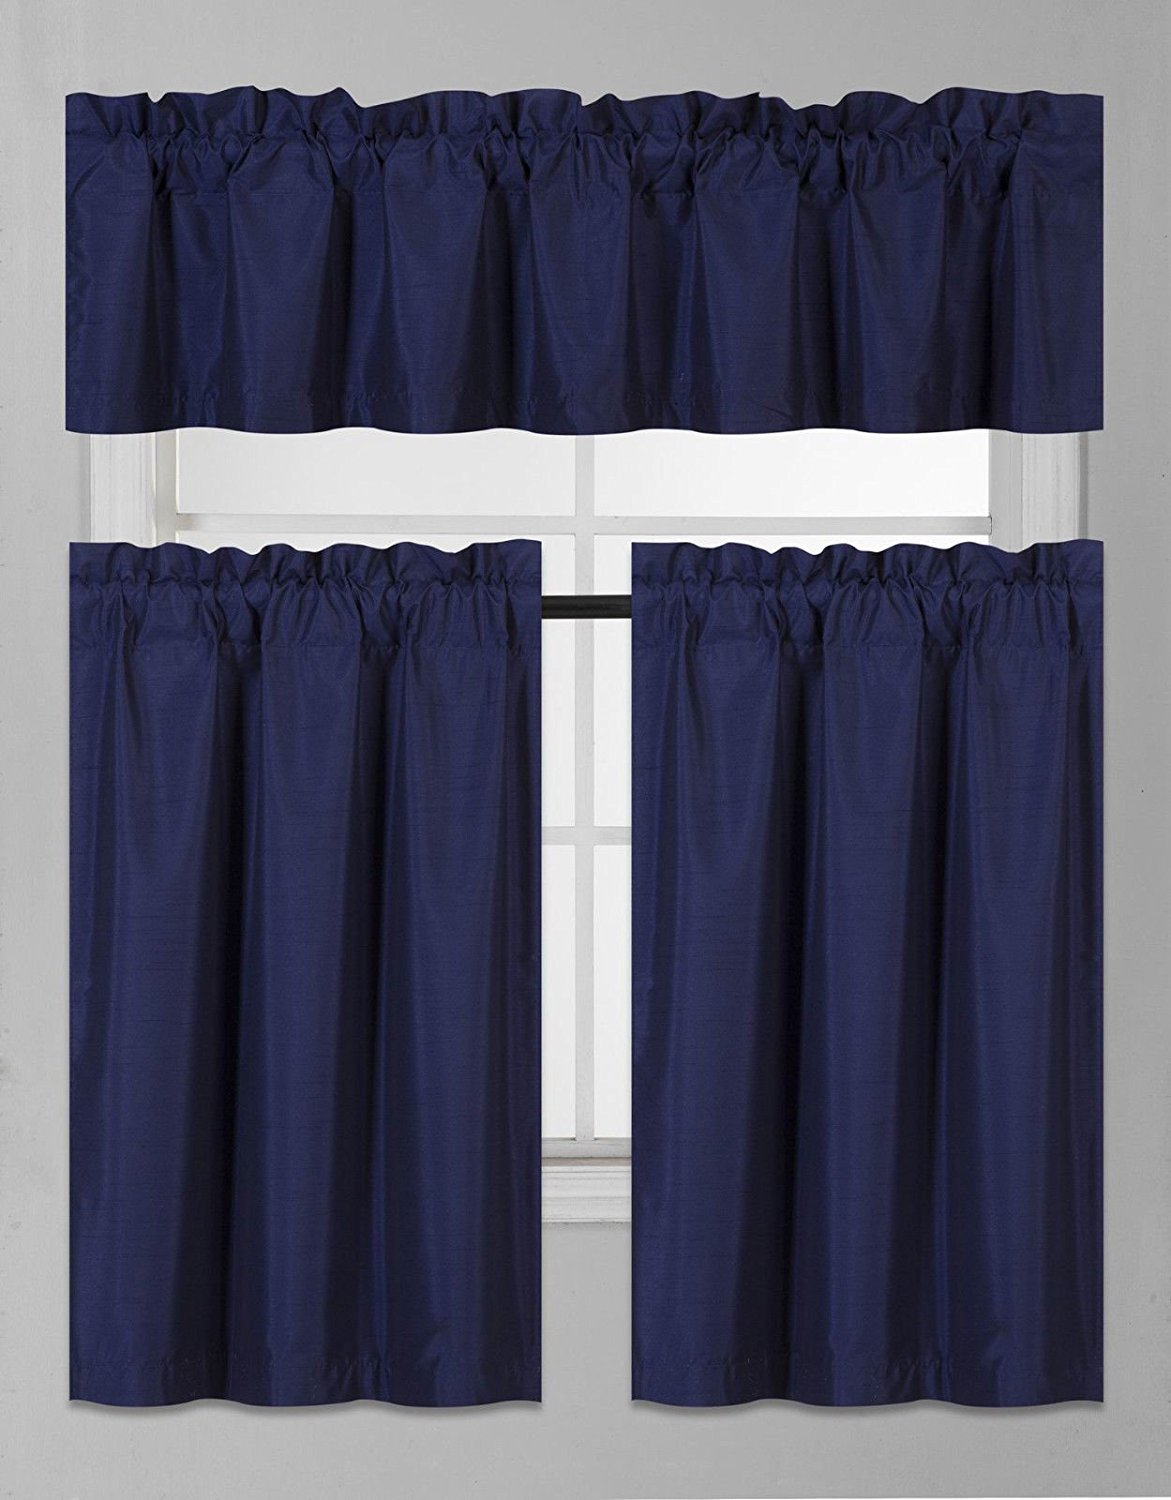 Elegant Home Collection 3 Piece Solid Color Faux Silk Blackout Kitchen Window Curtain Set with Tiers and Valance Solid Color Lined Thermal Blackout Drape Window Treatment Set #K3 (Navy Blue)